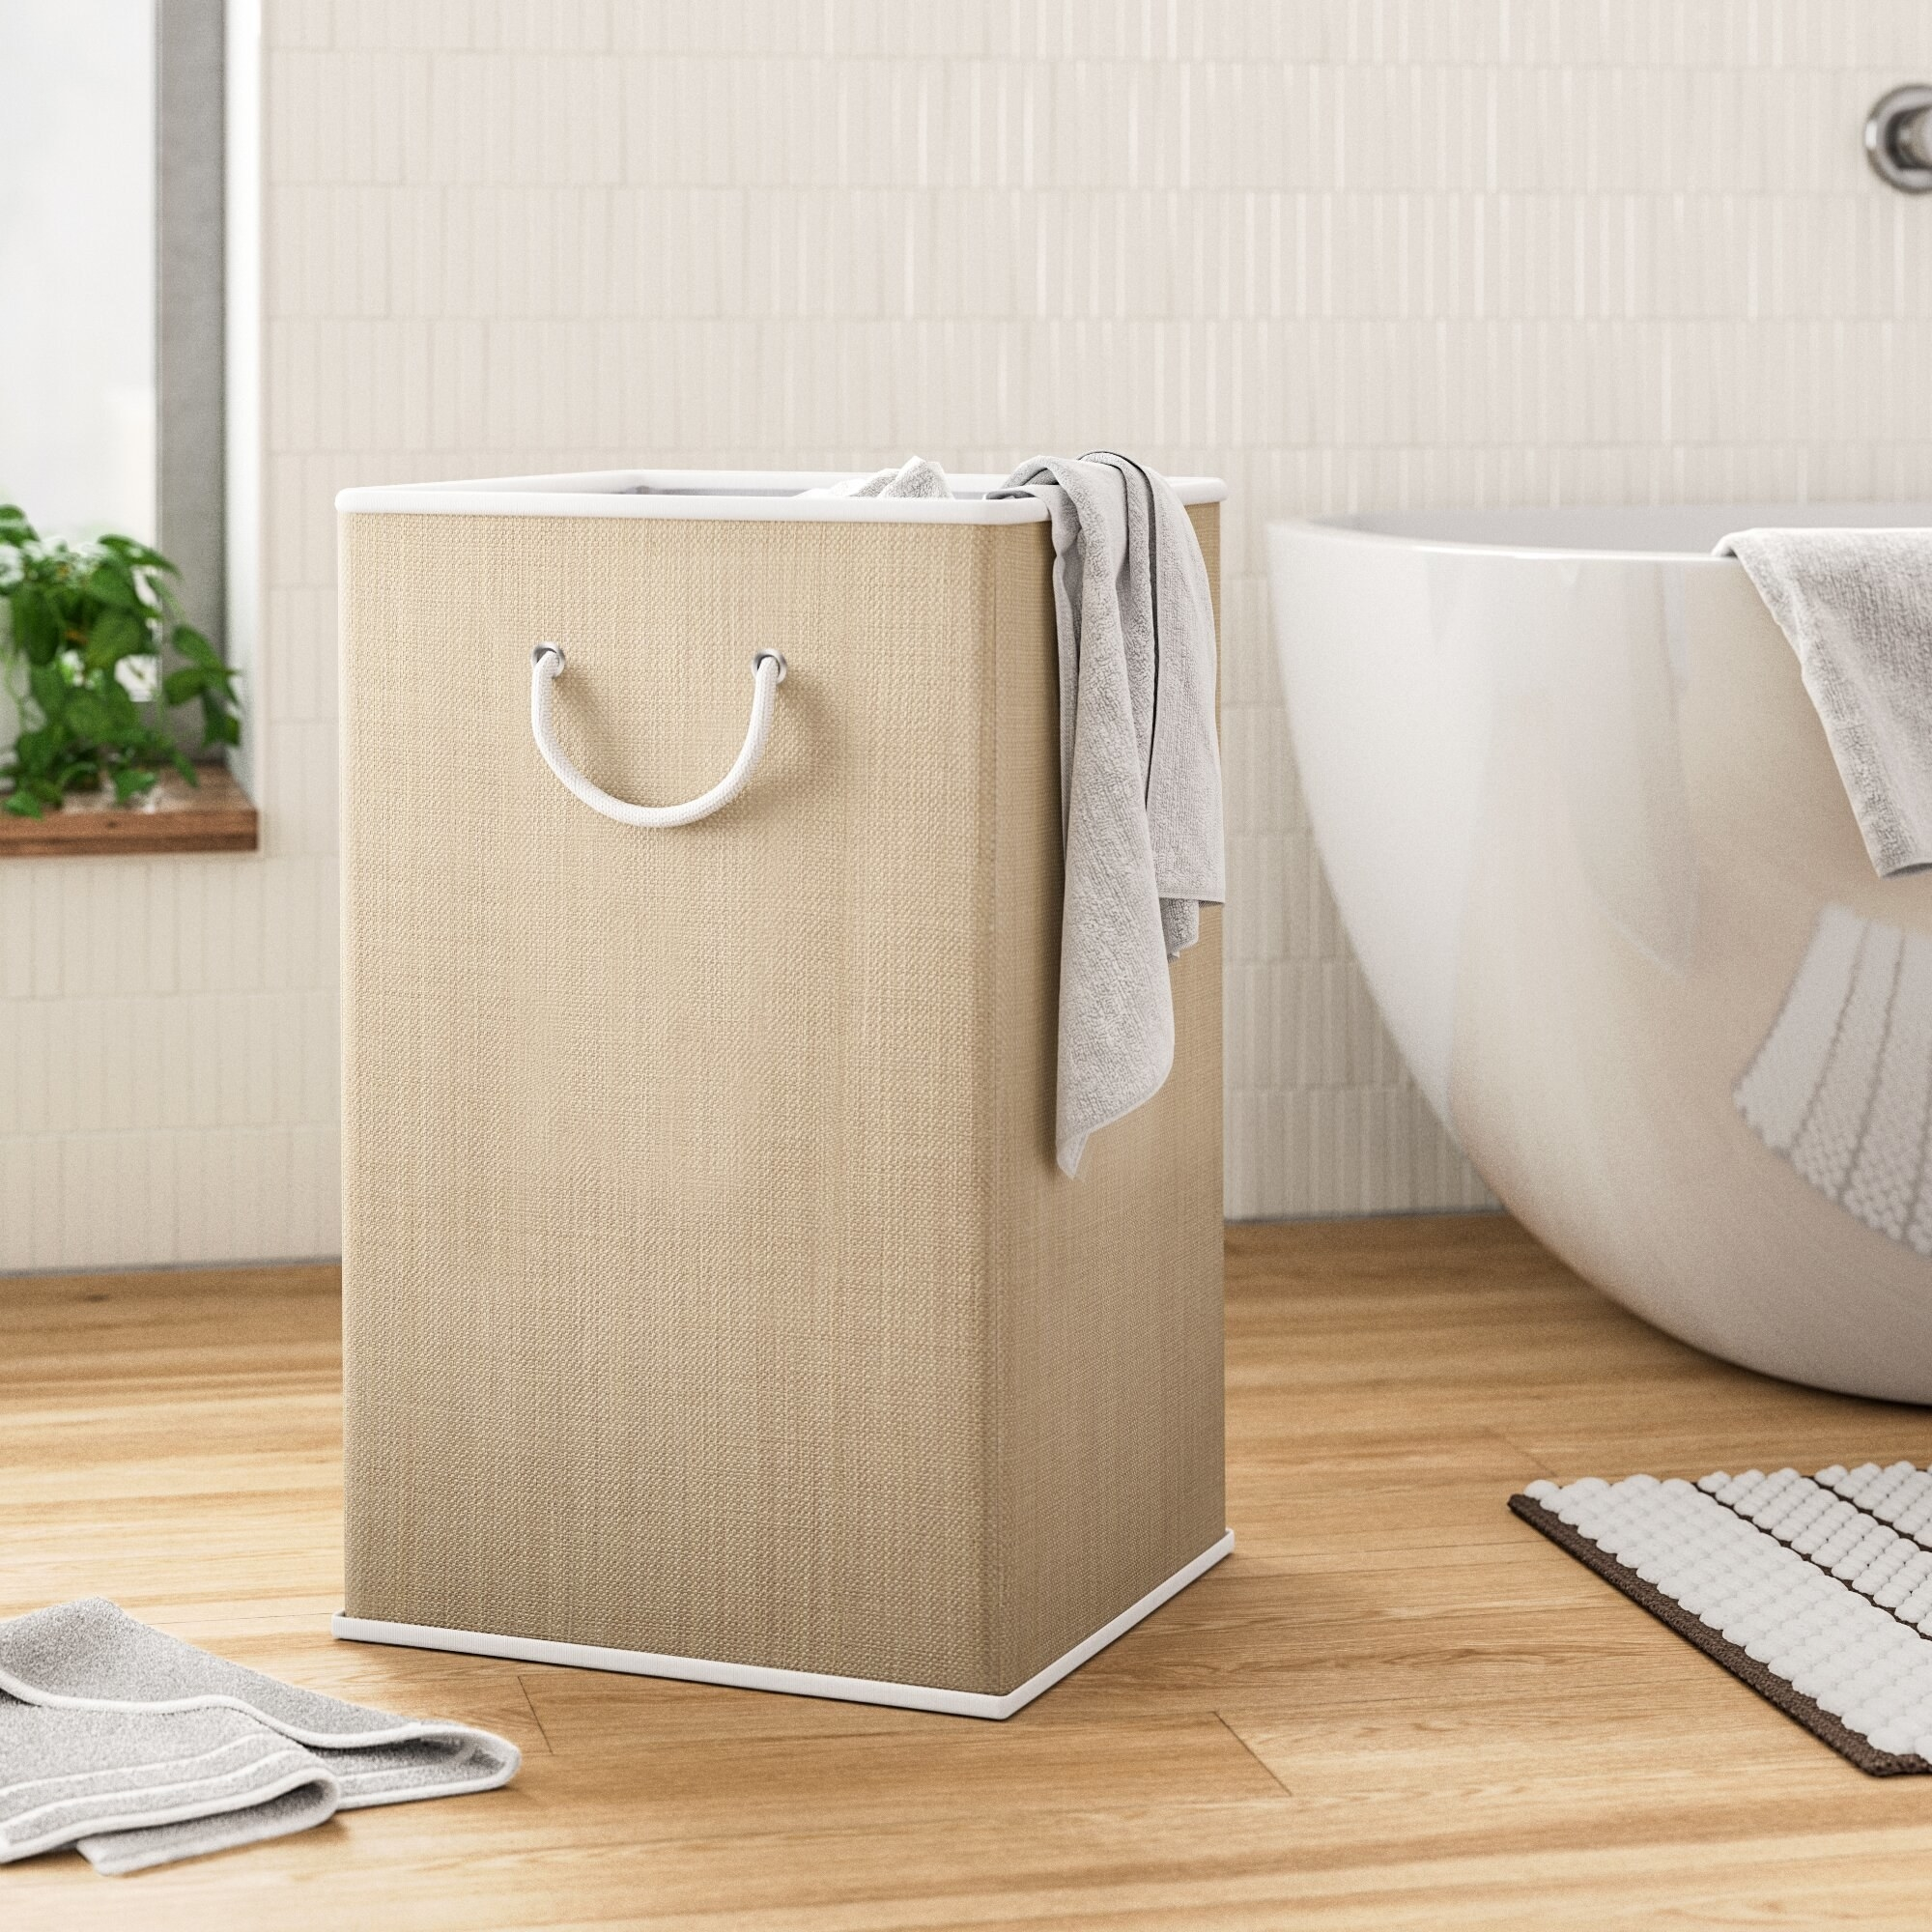 Collapsable laundry basket in bed room